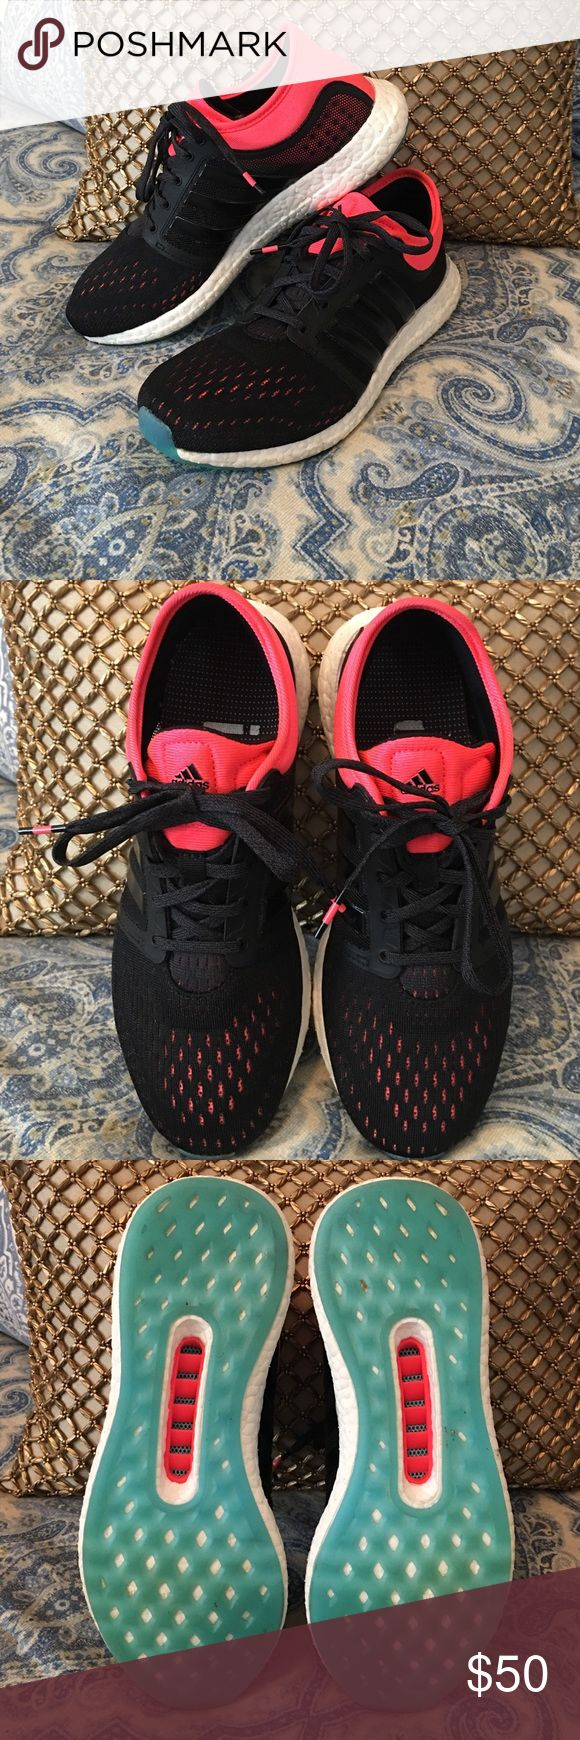 Adidas Rocket Boost shoes Adidas Rocket Boost tennis shoes in black/white/ and bright coral with touches of bright blue at the toe. In excellent condition! Worn 2-3 times! Very comfortable shoes! Size 7.5. 😎😎 Adidas Shoes Athletic Shoes